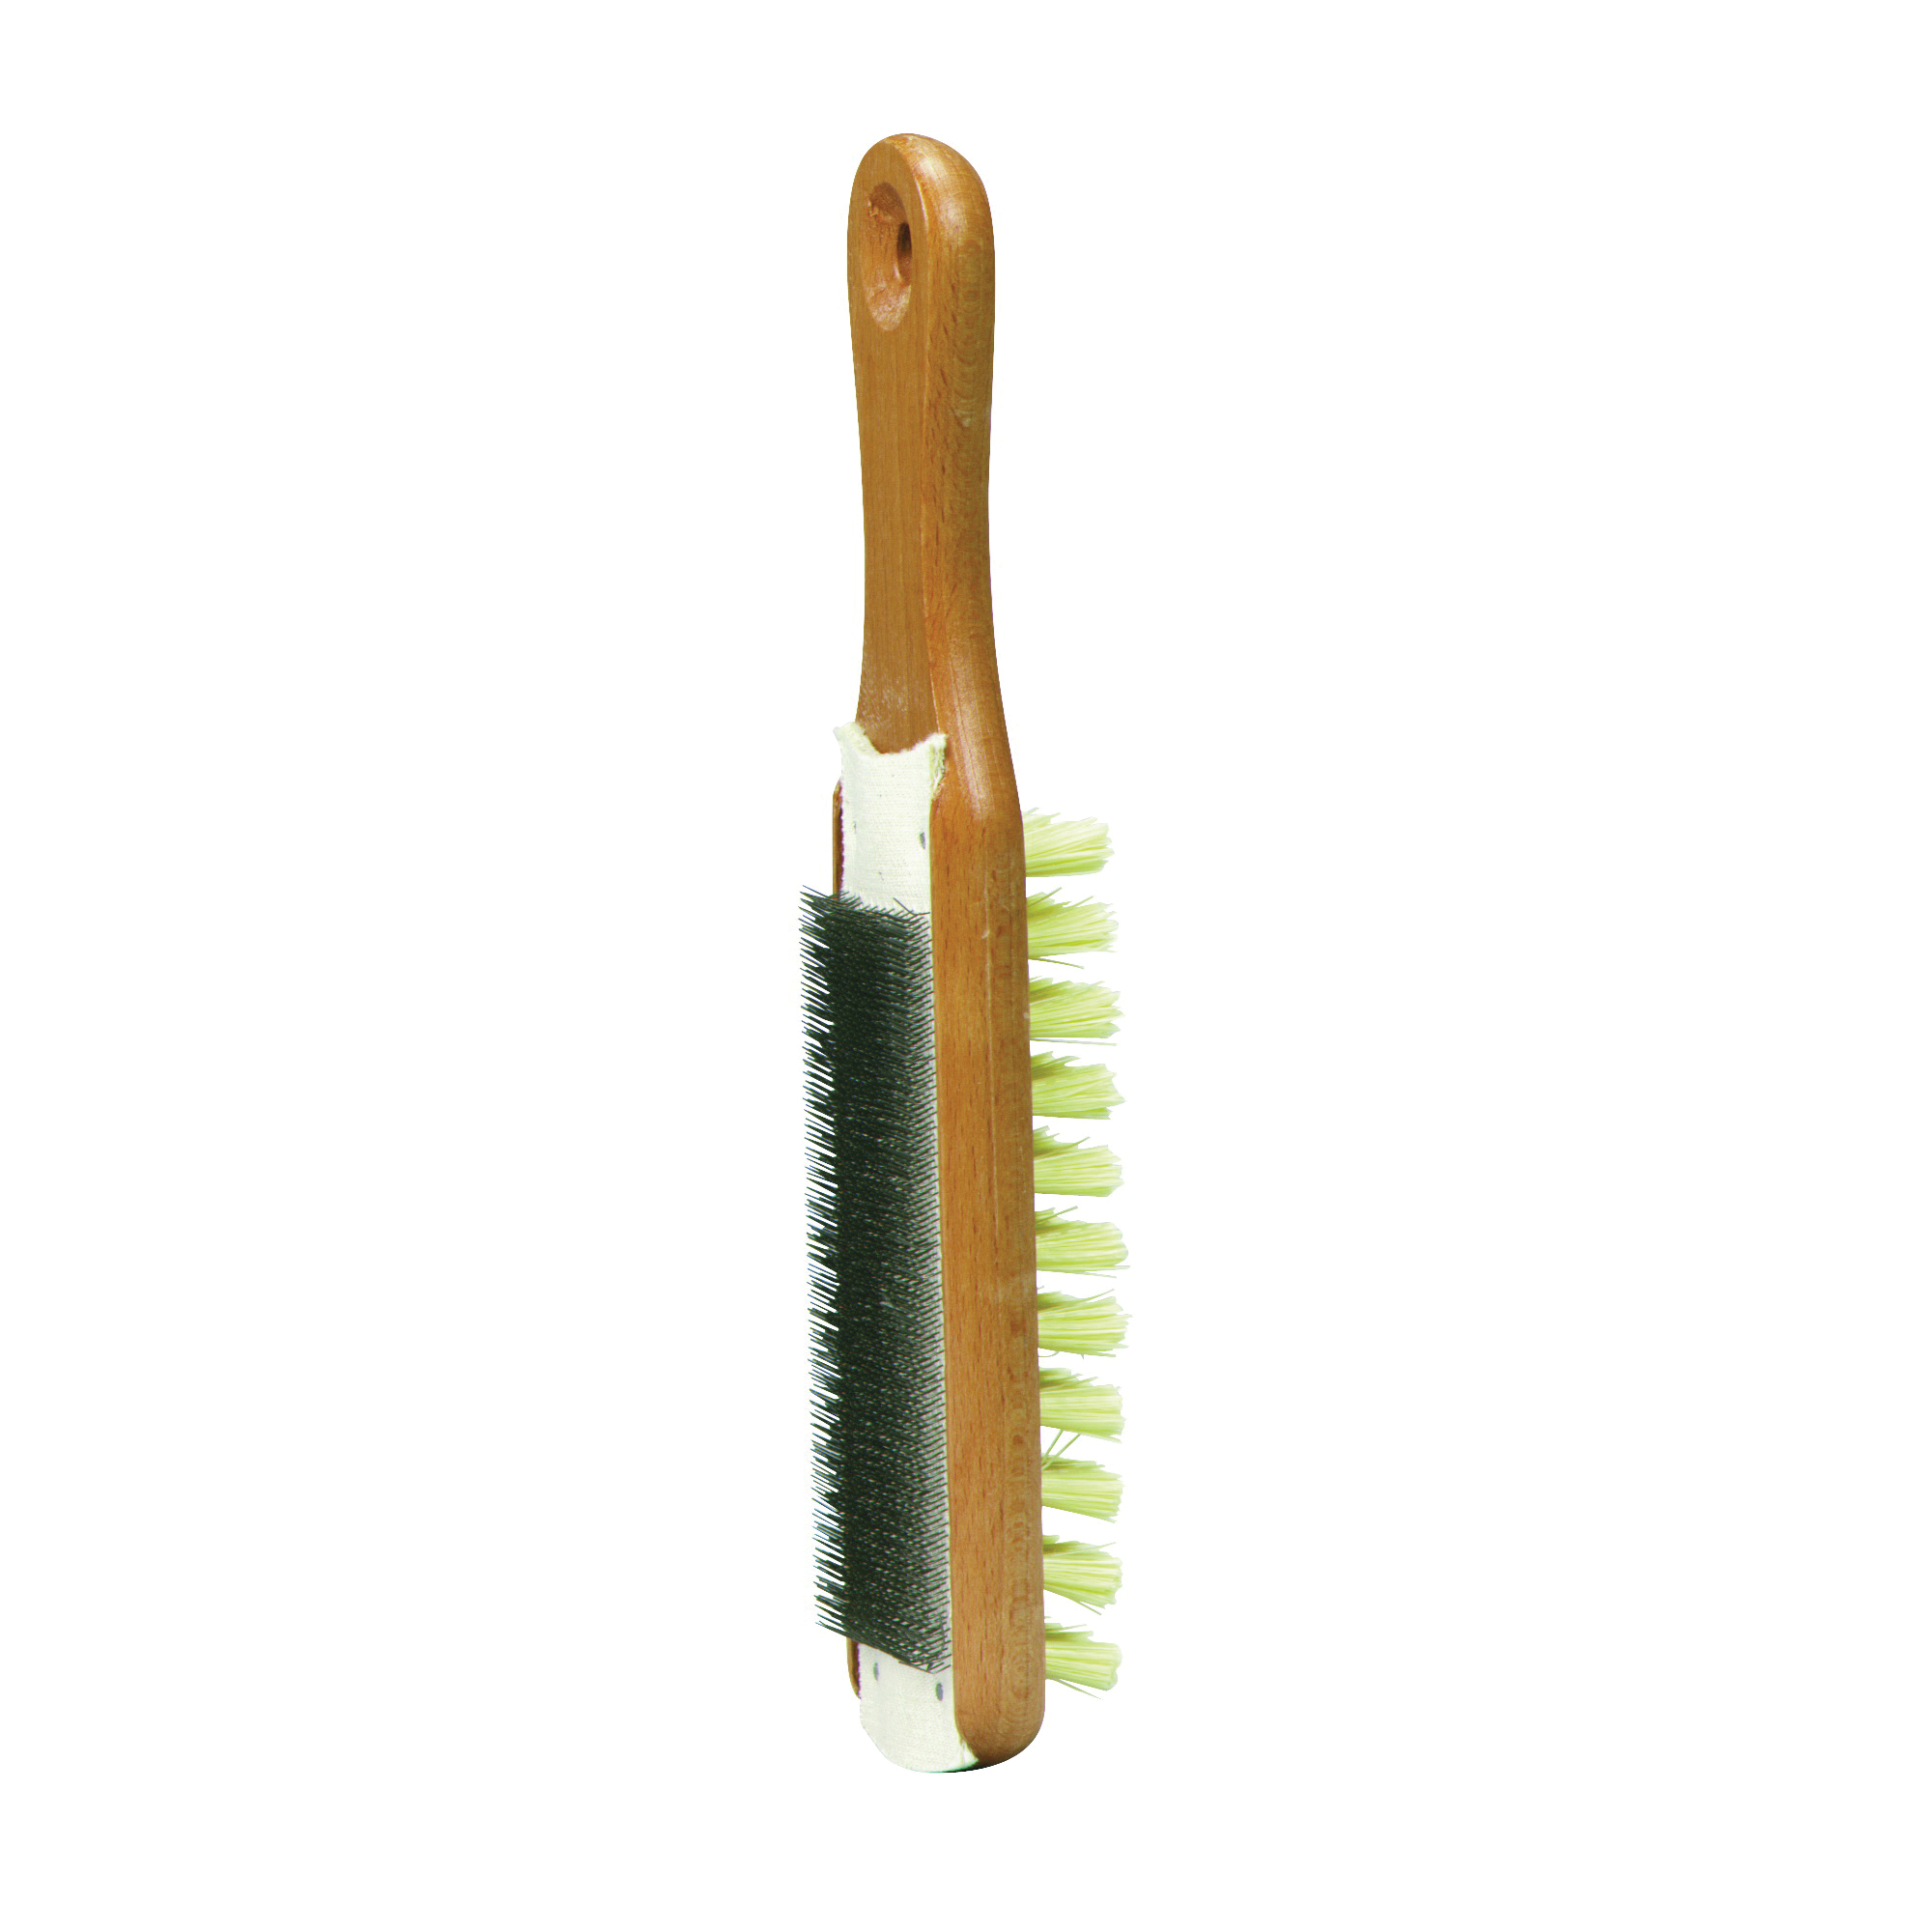 Picture of Crescent Nicholson 21467 File Card and Brush, 10 in L, Steel/Wood